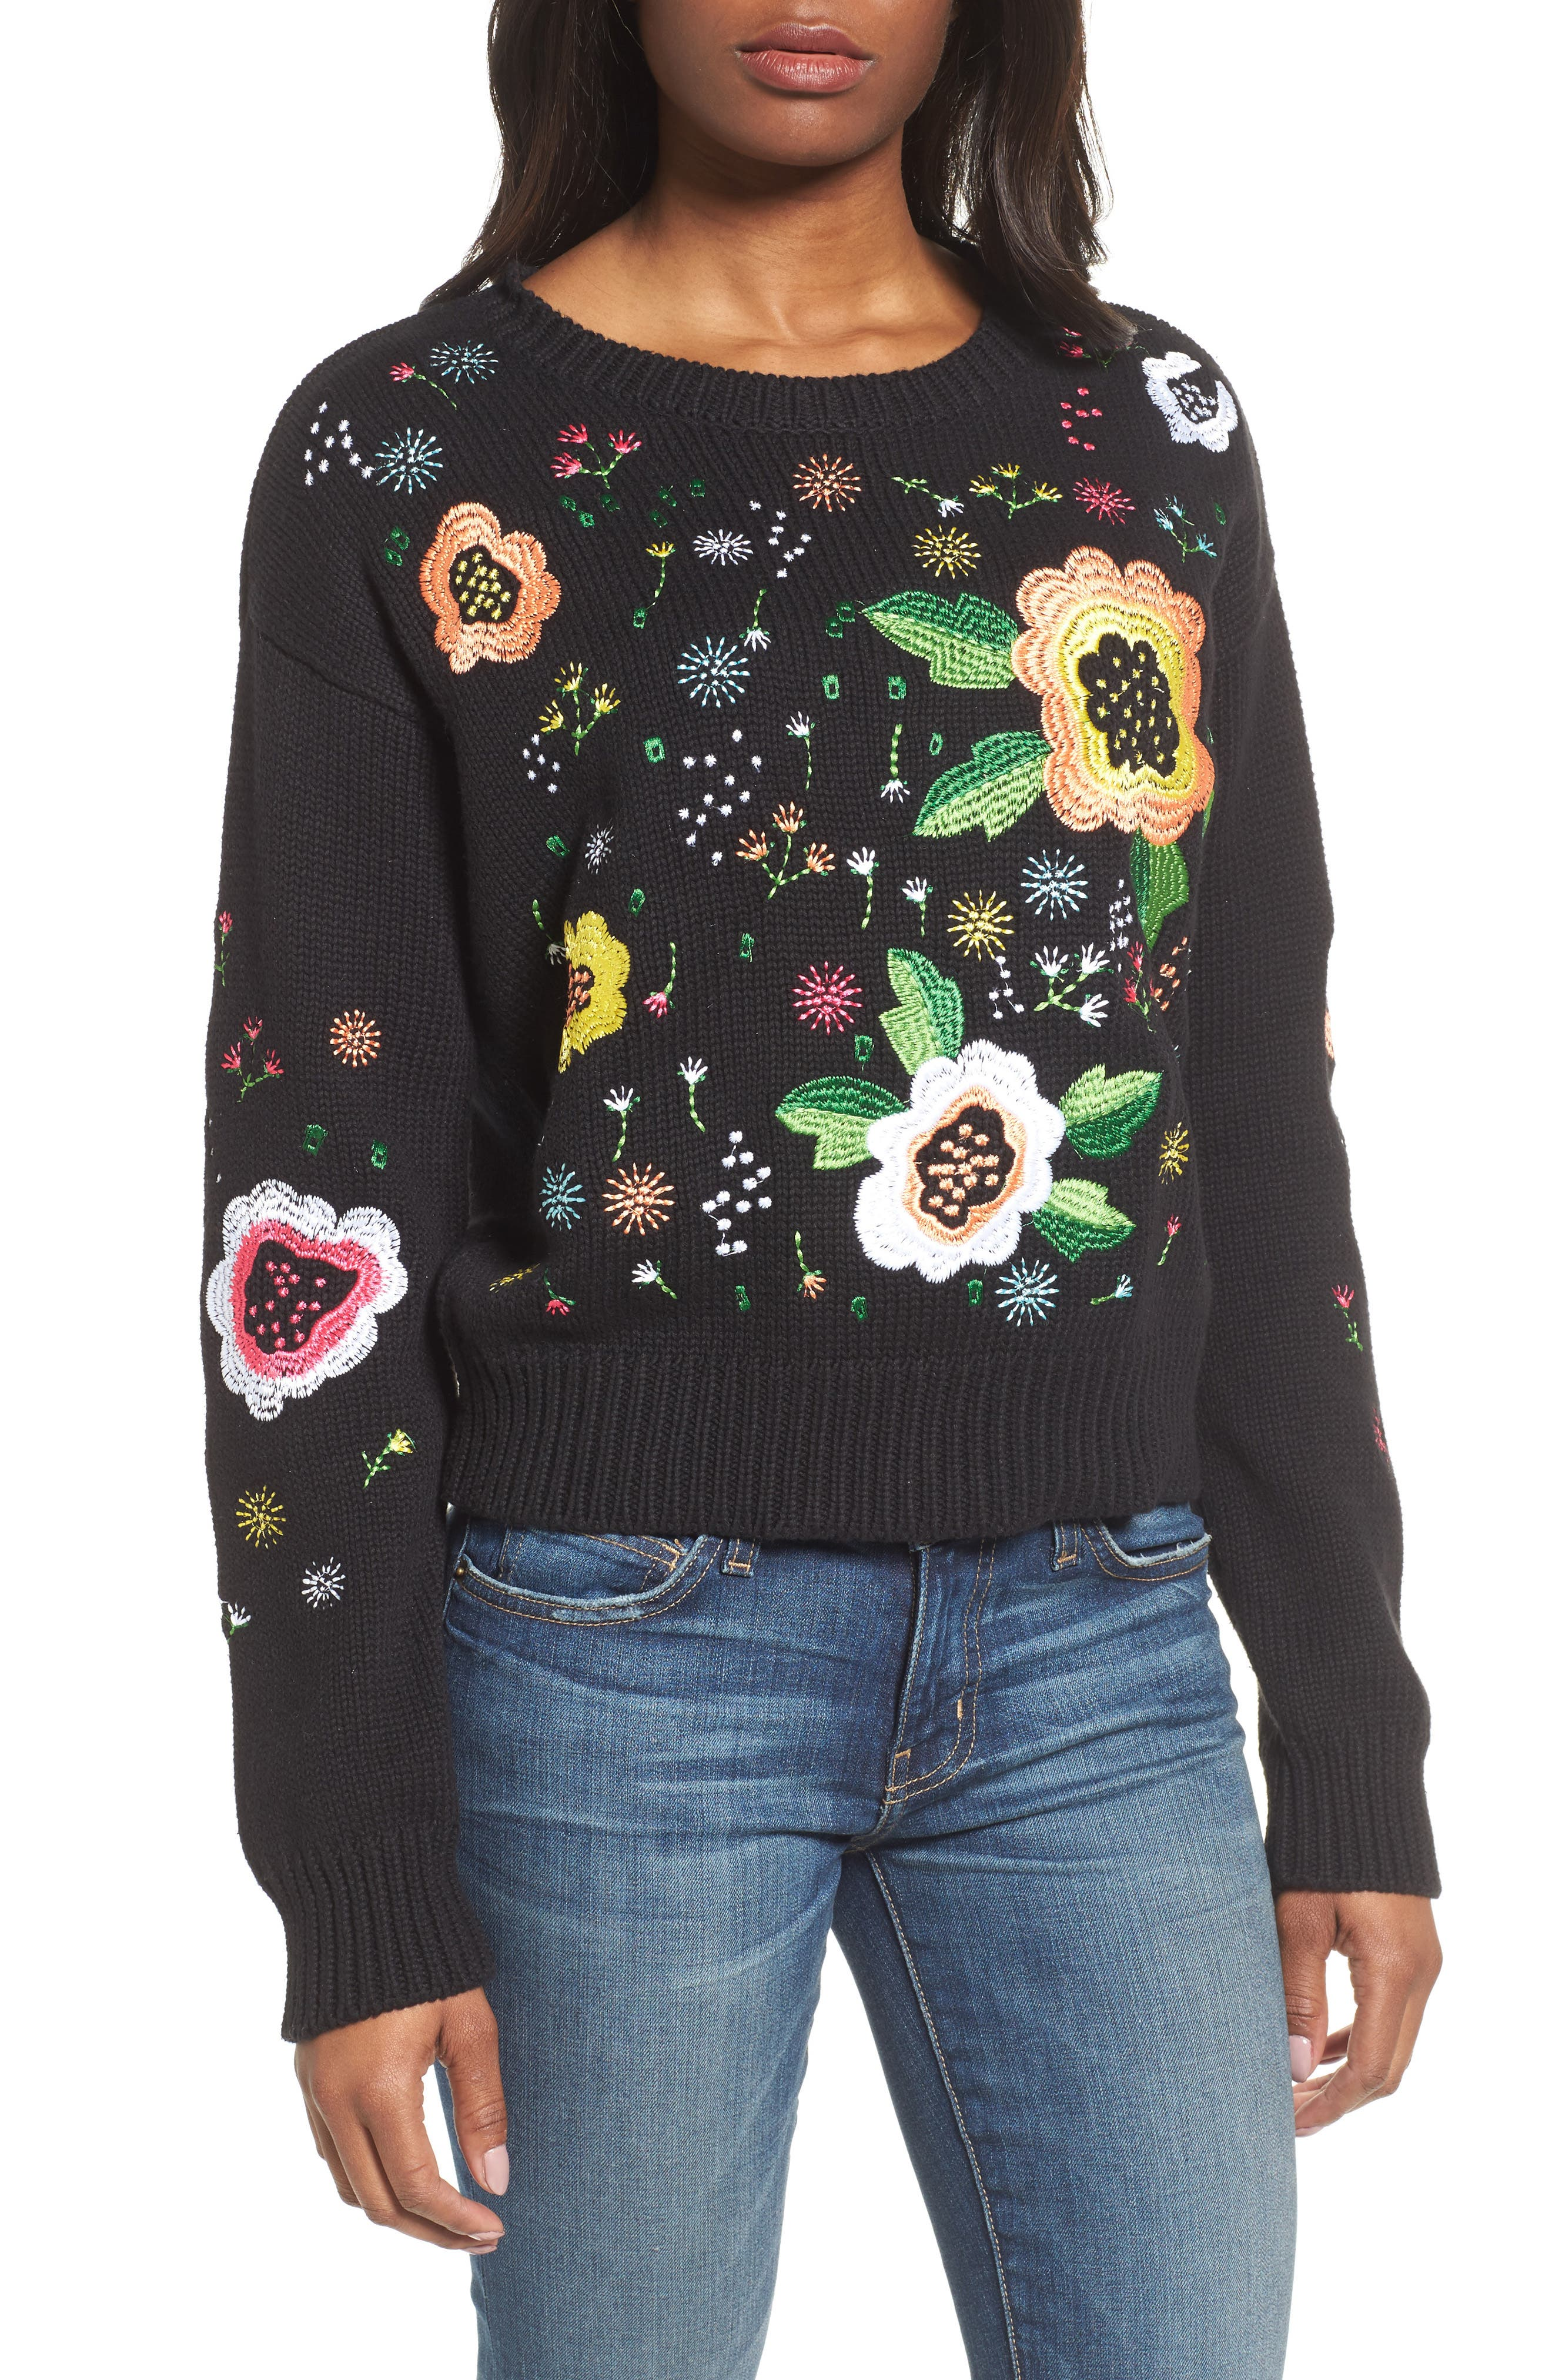 Main Image - RDI Floral Embroidered Sweater